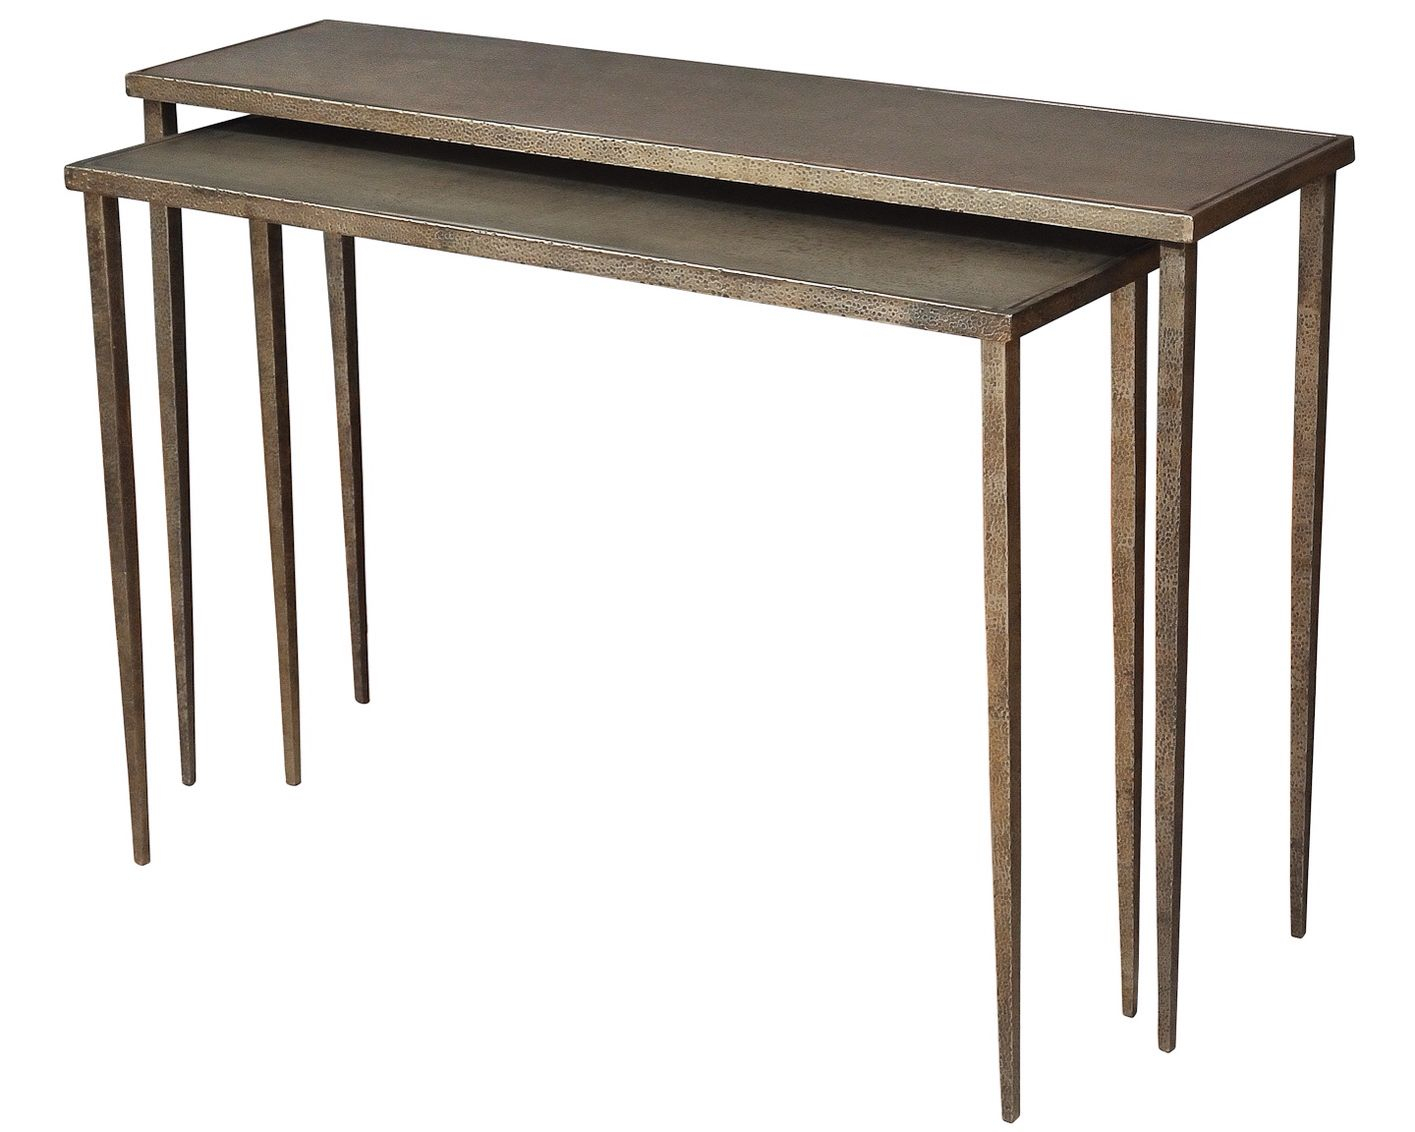 Hammered Sheet Metal Console Tables | My Designs | Pinterest Inside Parsons Grey Marble Top & Dark Steel Base 48x16 Console Tables (View 2 of 30)